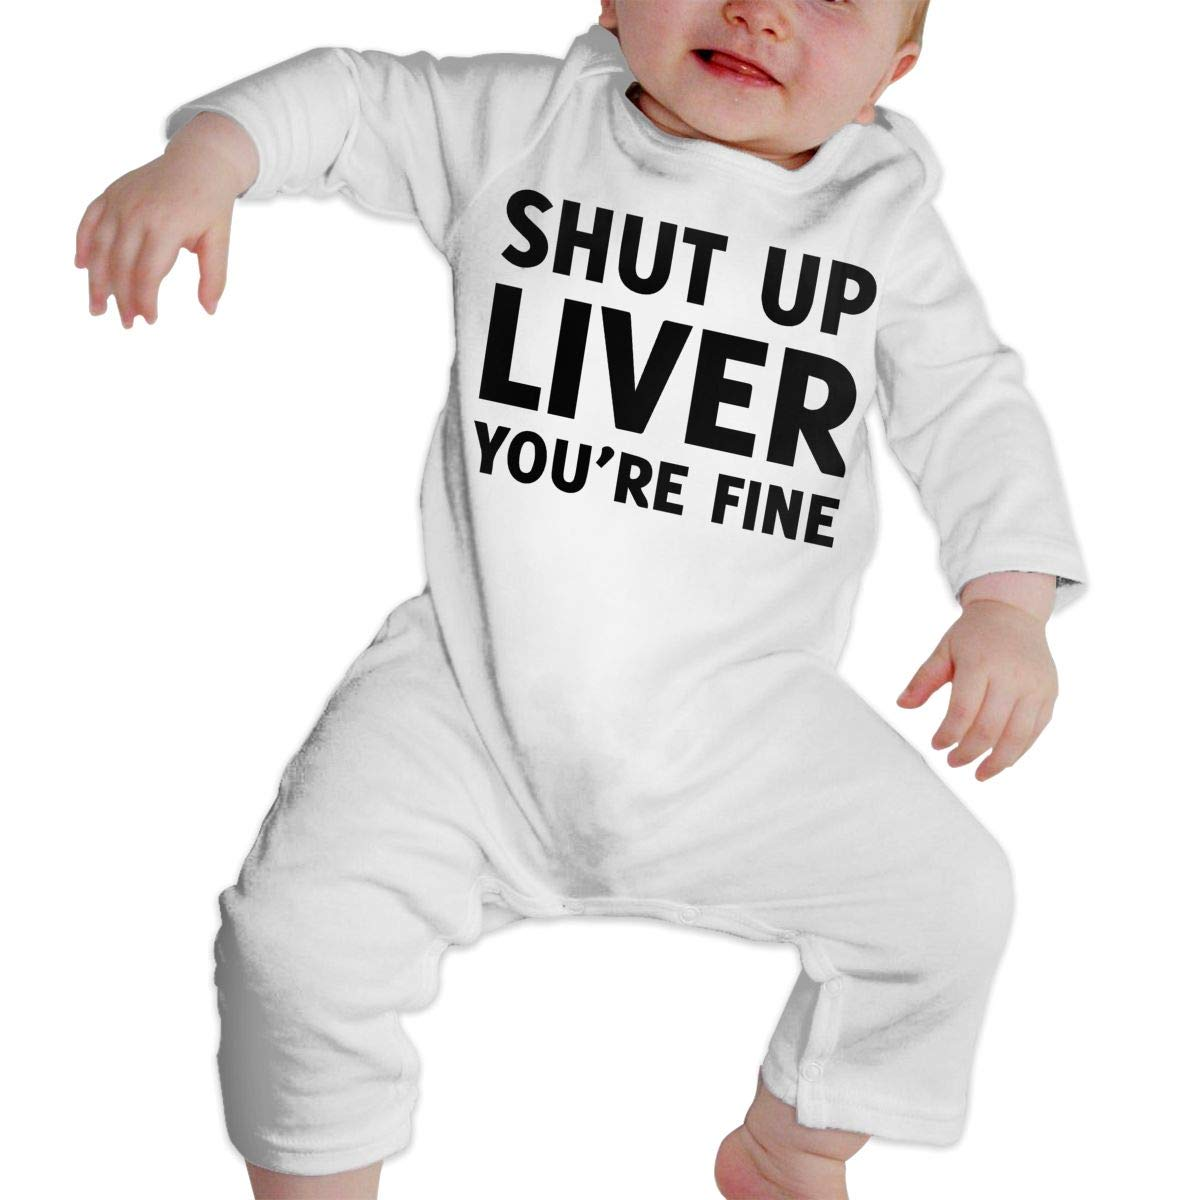 Soft Shut Up Liver Youre Fine Sleepwear U99oi-9 Long Sleeve Cotton Bodysuit for Baby Boys and Girls